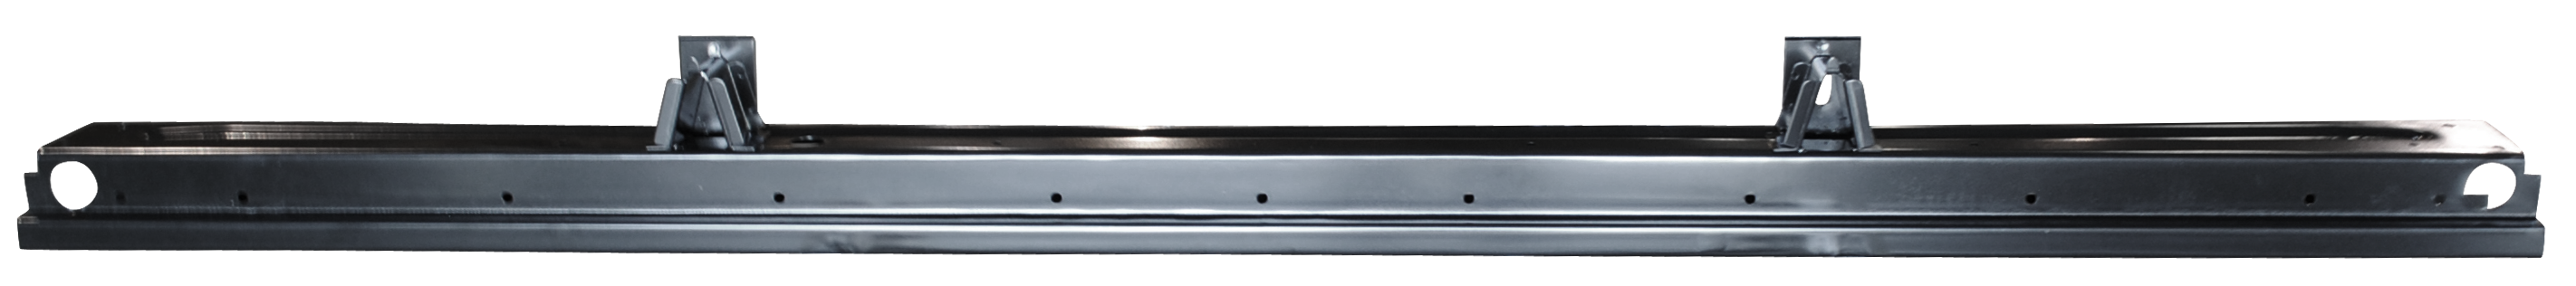 1963-72 C10 rear cross sill wood bed fleetside